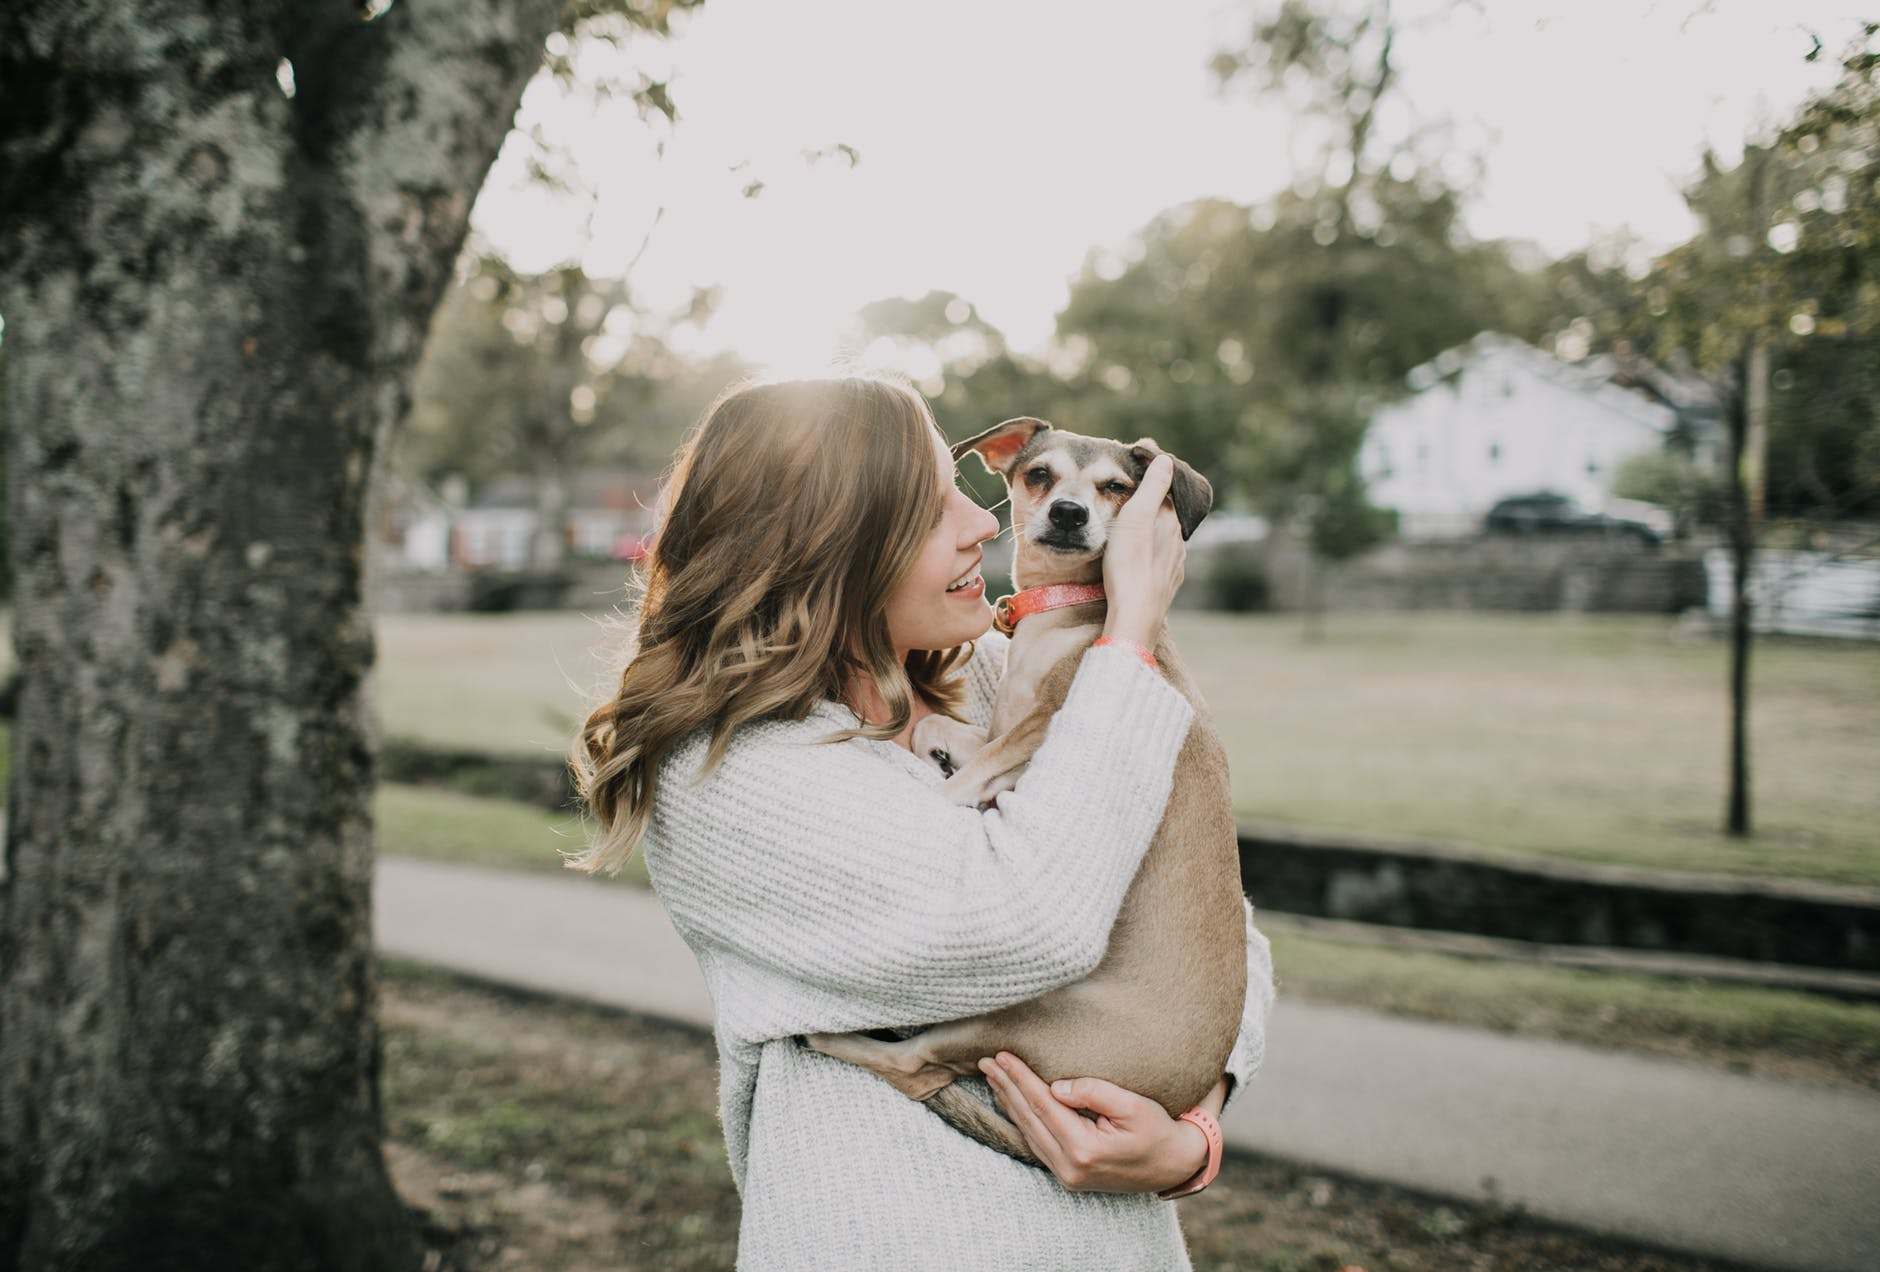 6 Steps to Having a Polite Dog With Good Manners